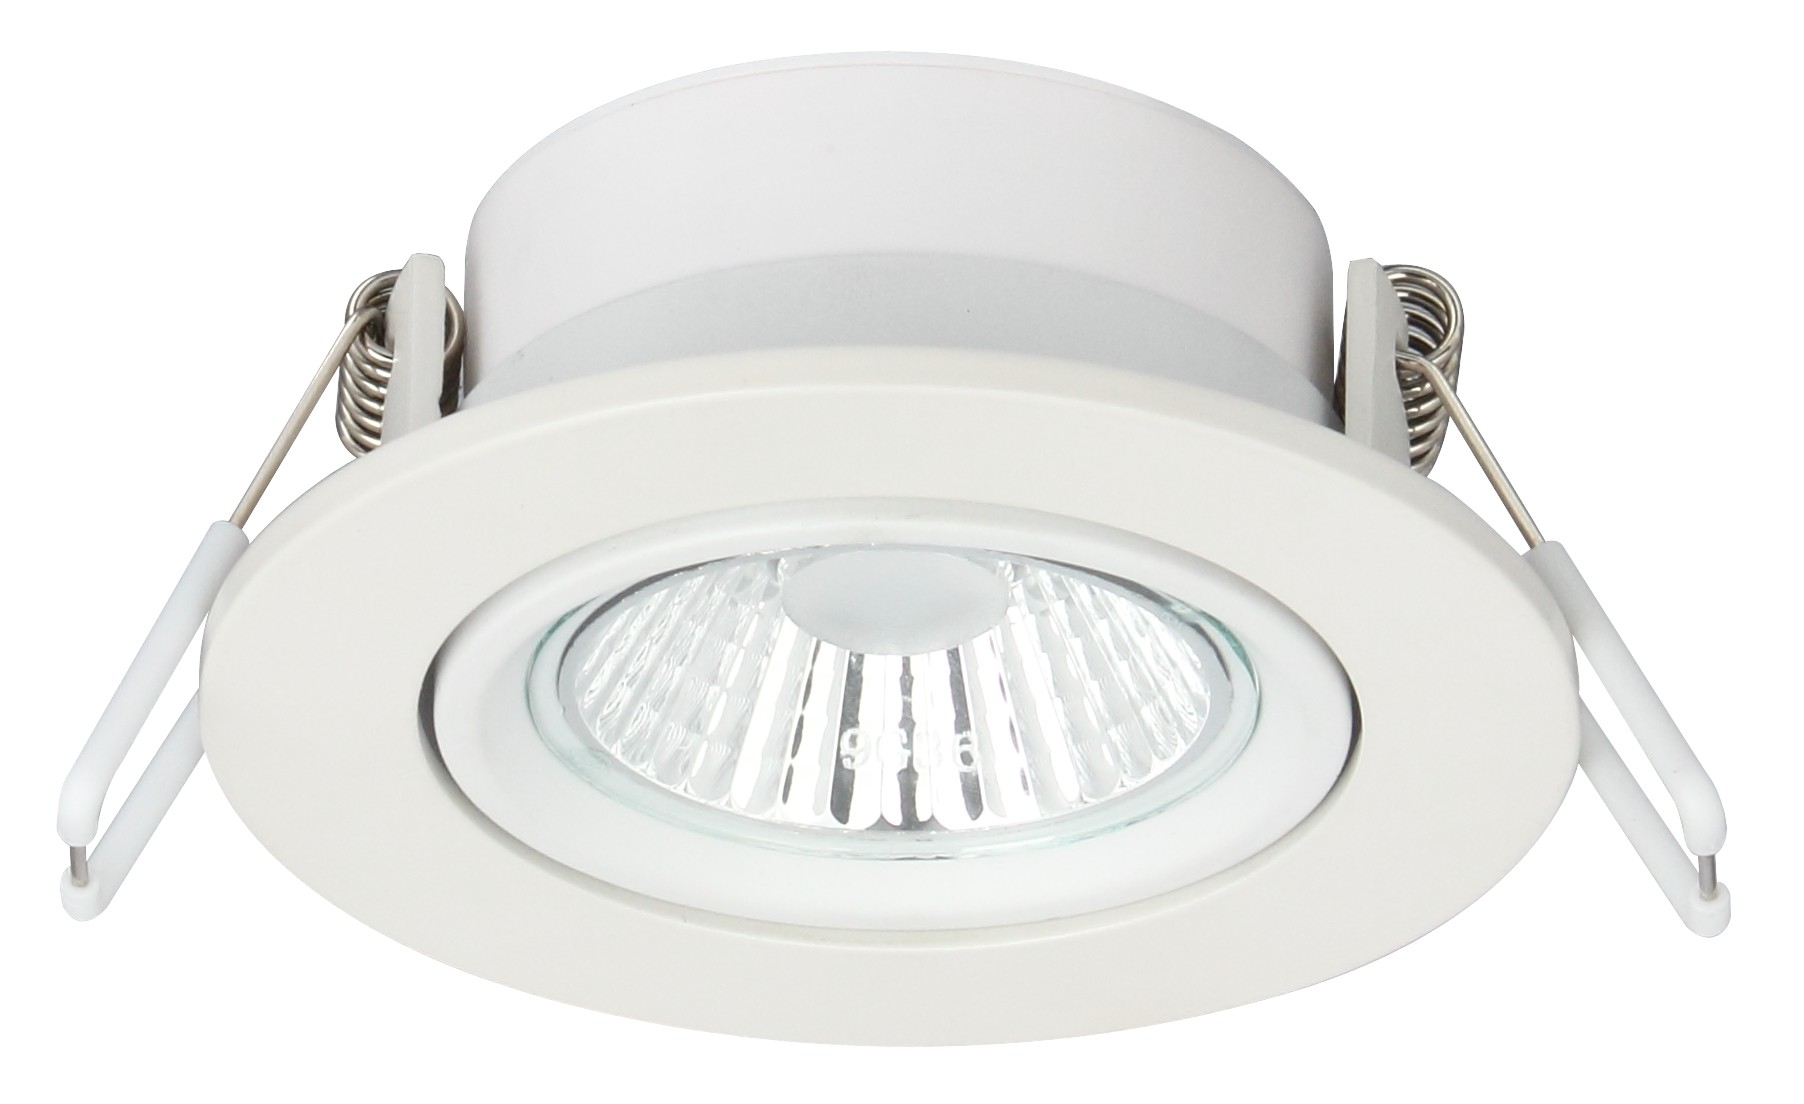 Civilight_Downlight_WCVC002W06 weiss - 8007